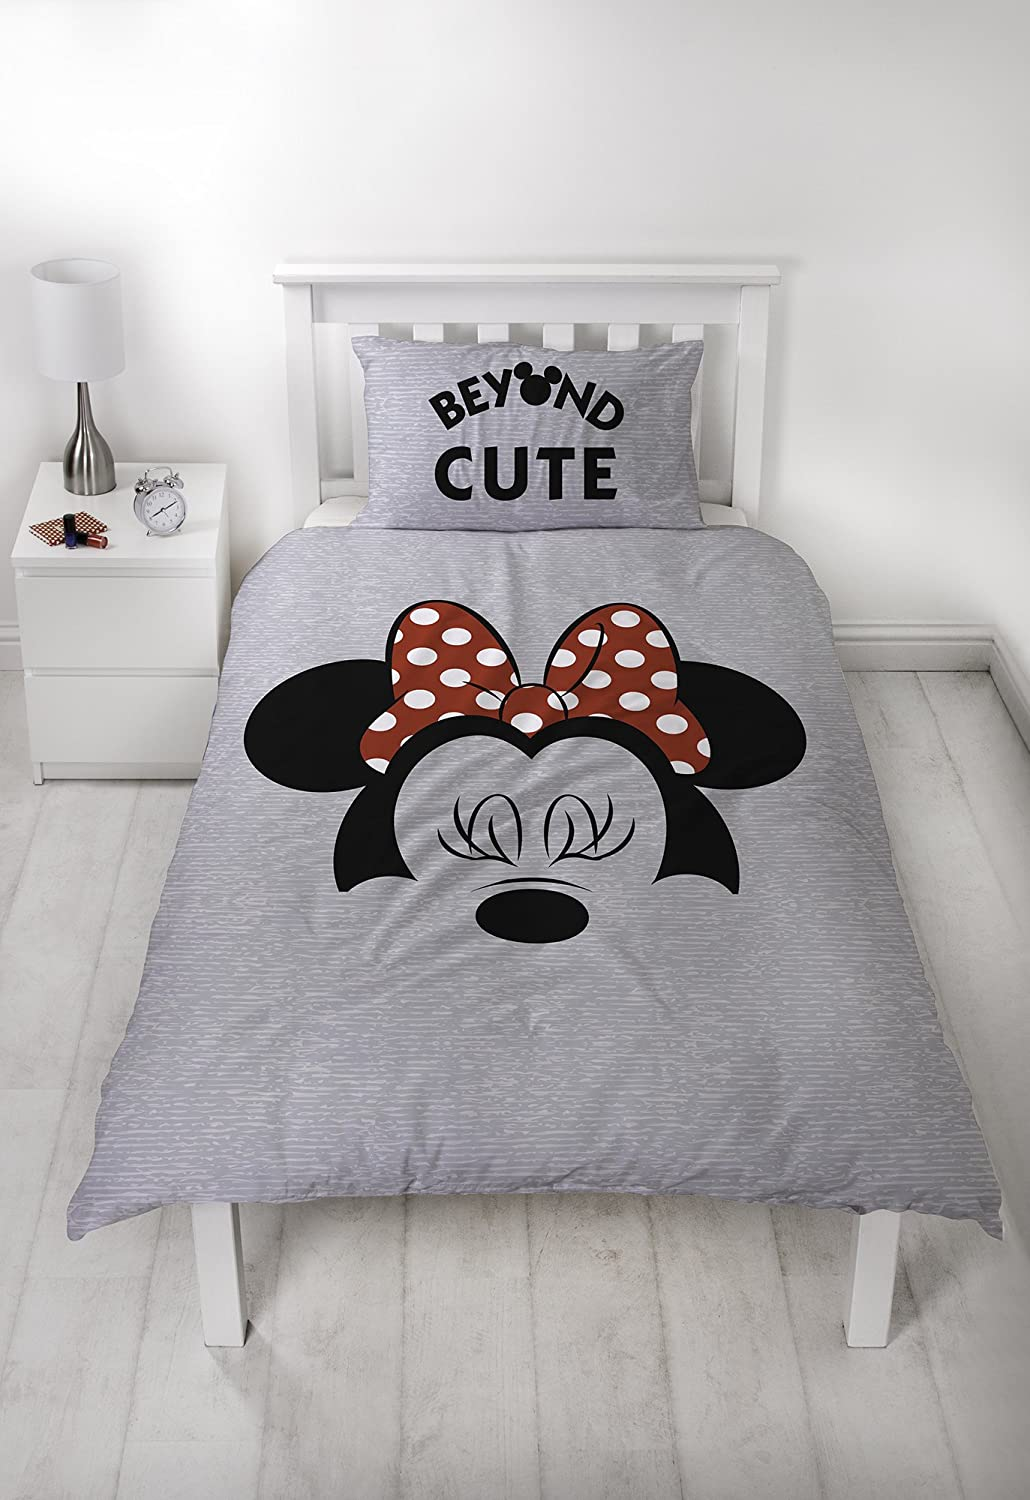 Disney Minnie Mouse Single Duvet Cover Set | Classic Cute Bow Two Sided Reversible Design Character World DMNCUTDS003UK1